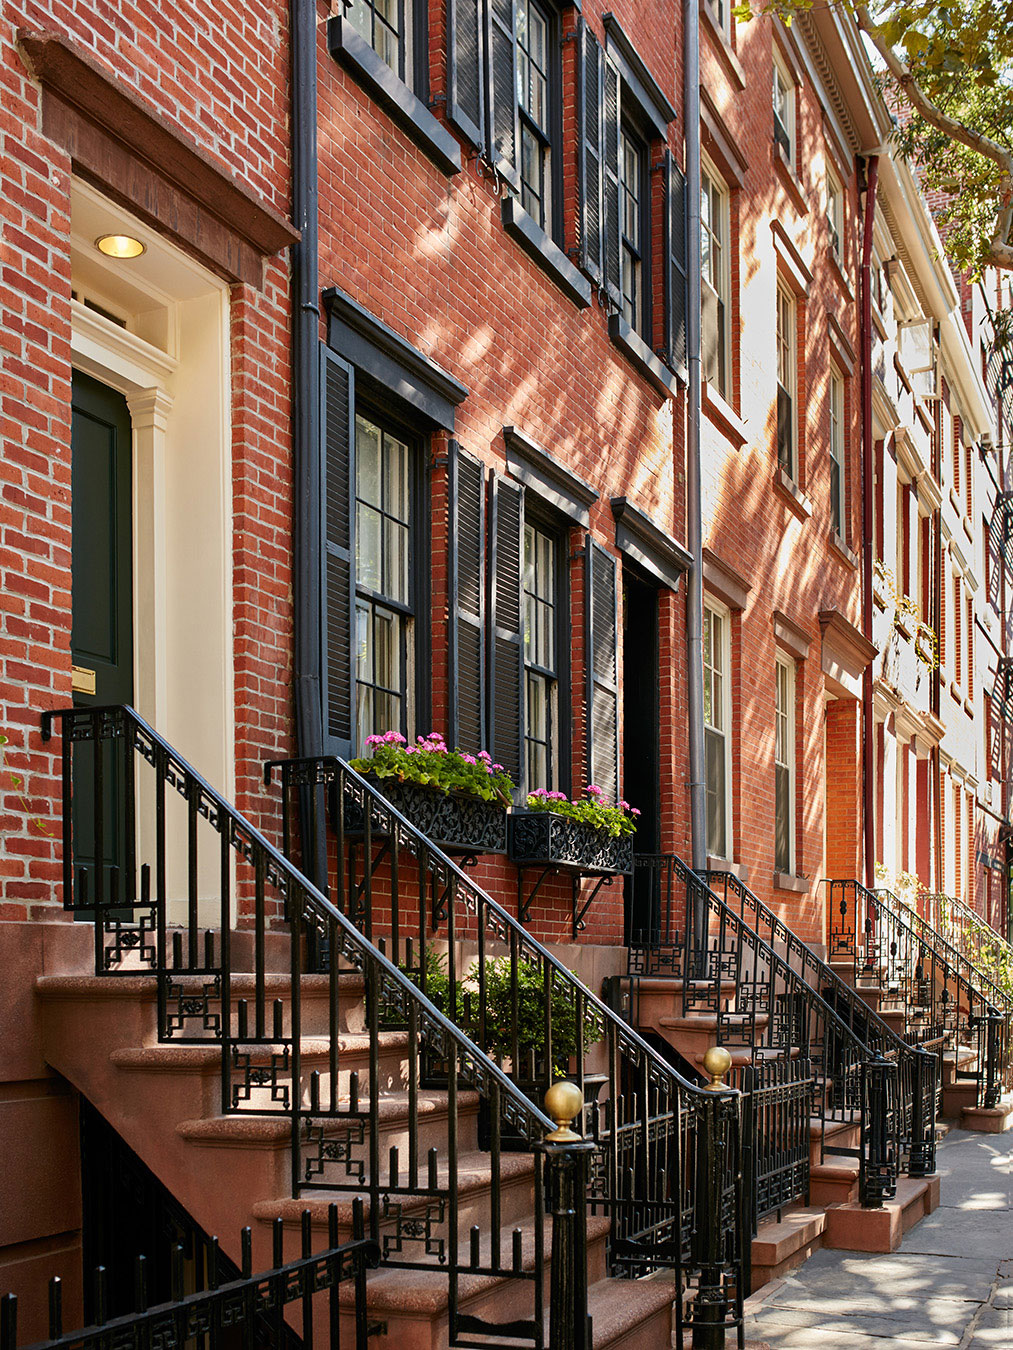 160 Leroy is in West Village, also known as 'Little Bohemia', which remains the cultural heart of New York.